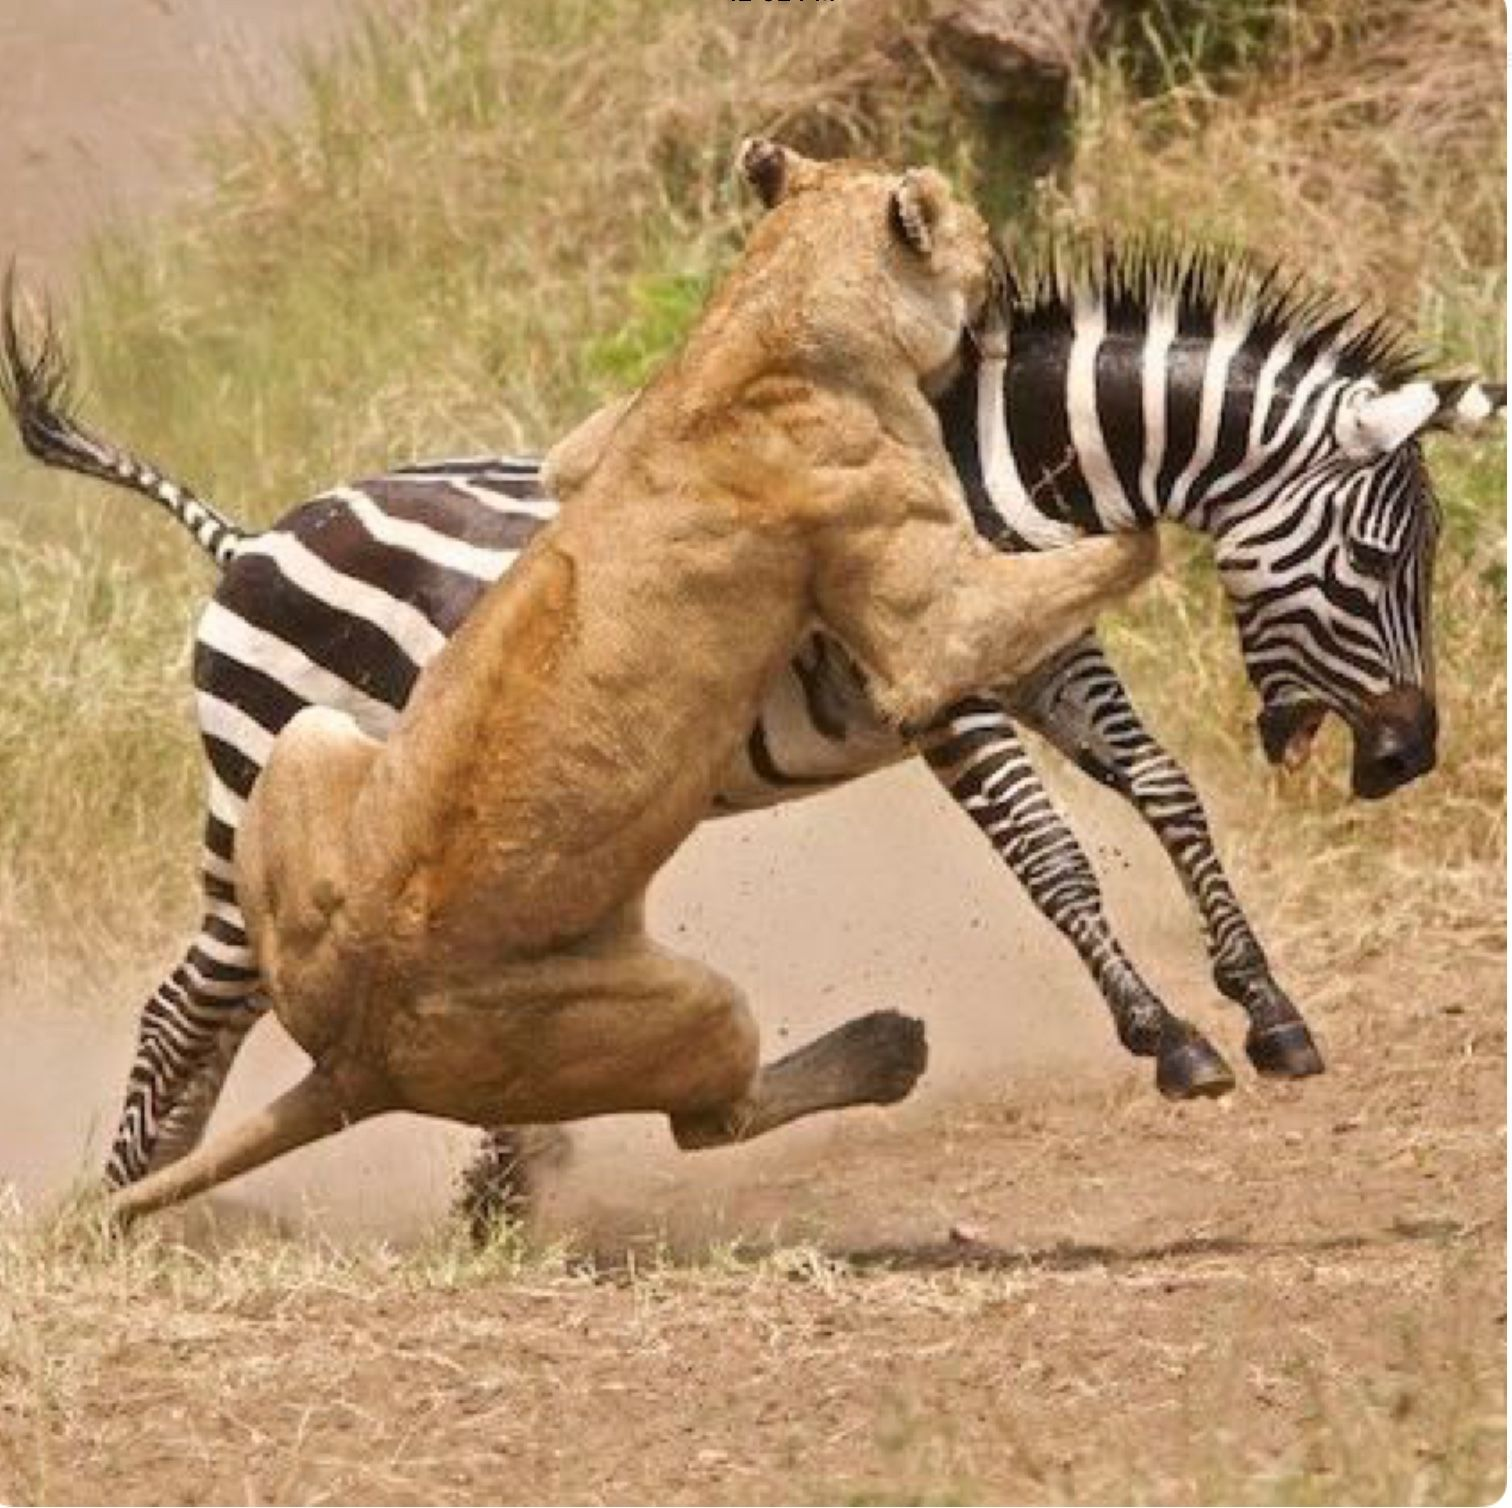 Lioness bringing down a zebra. African animals